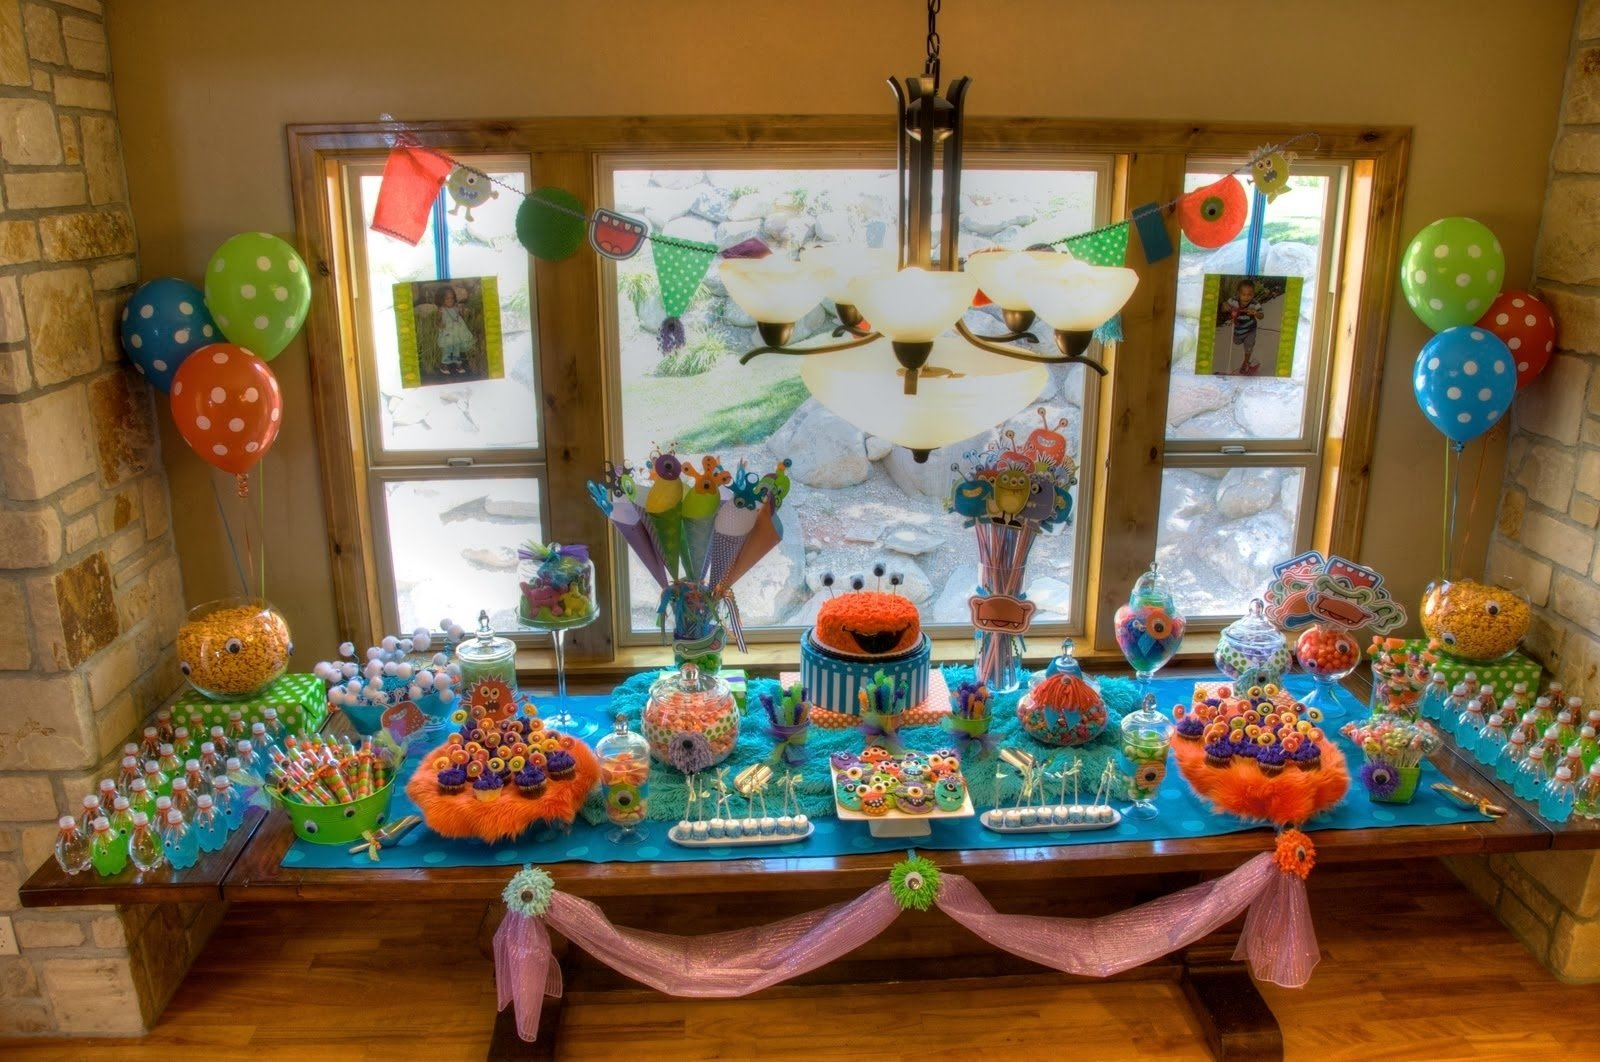 10 Unique 6 Year Old Boy Birthday Party Ideas momfessionals party planning 1 2020